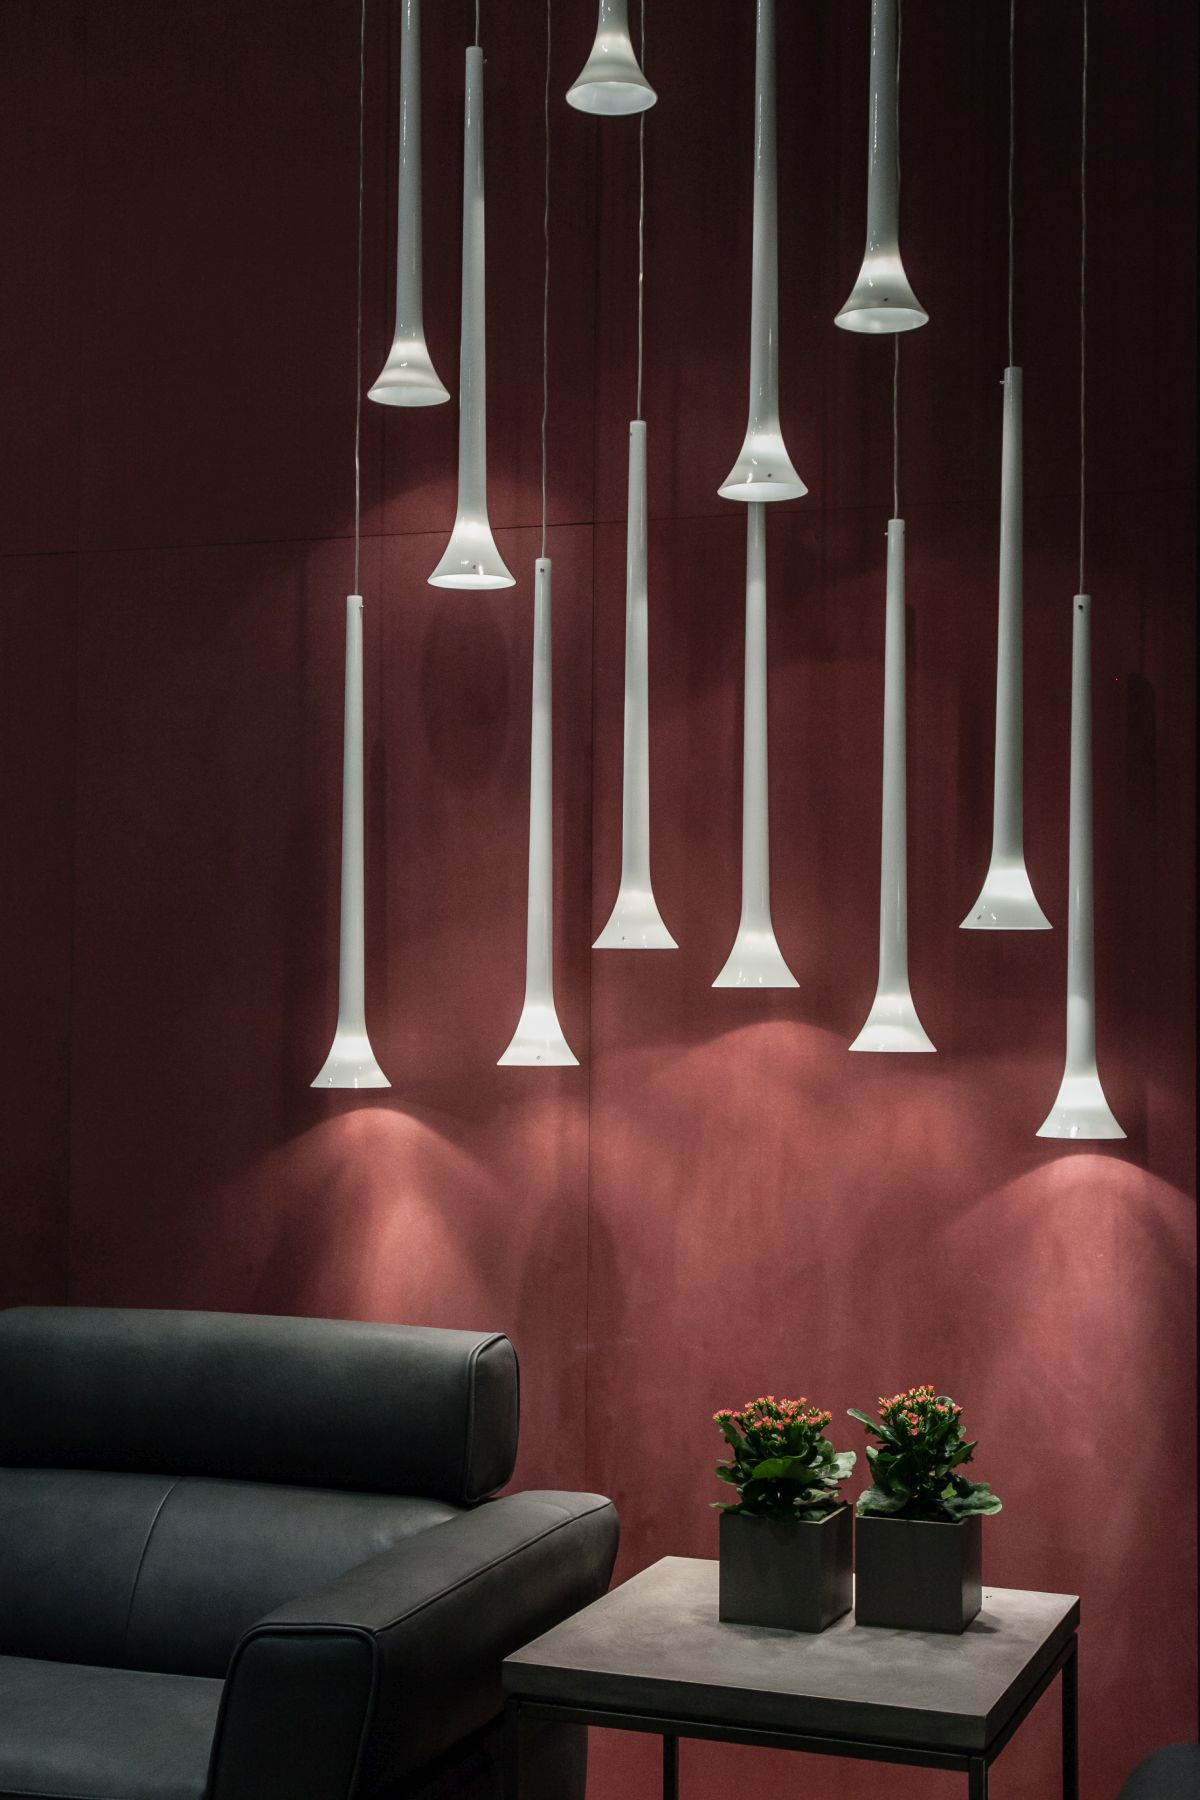 Living Room Lights String Ideas: Living Room Lighting Ideas That Inspire Us To Think